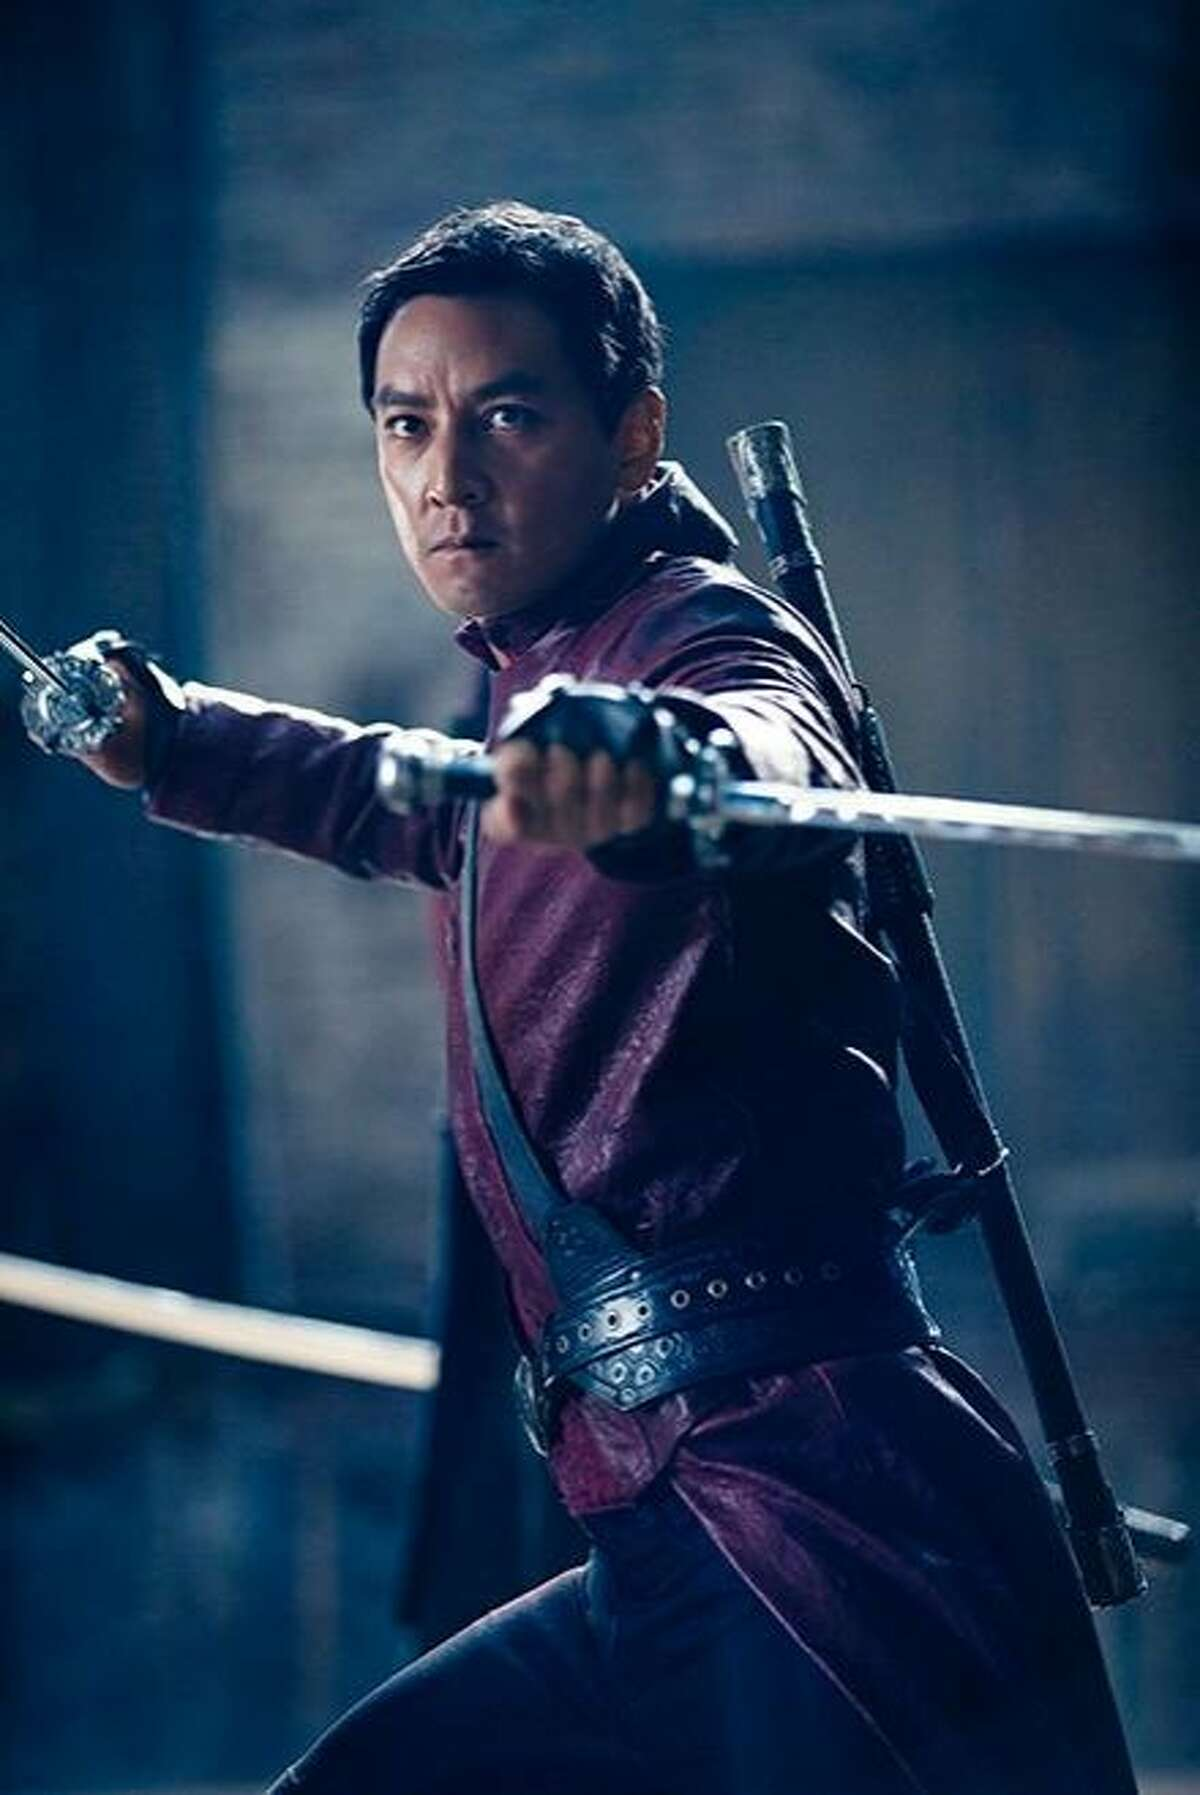 Daniel Wu stars as Sunny in Into the Badlands: A warrior and a young boy seek enlightenment in this martial arts-themed series debuting Nov. 15 on AMC